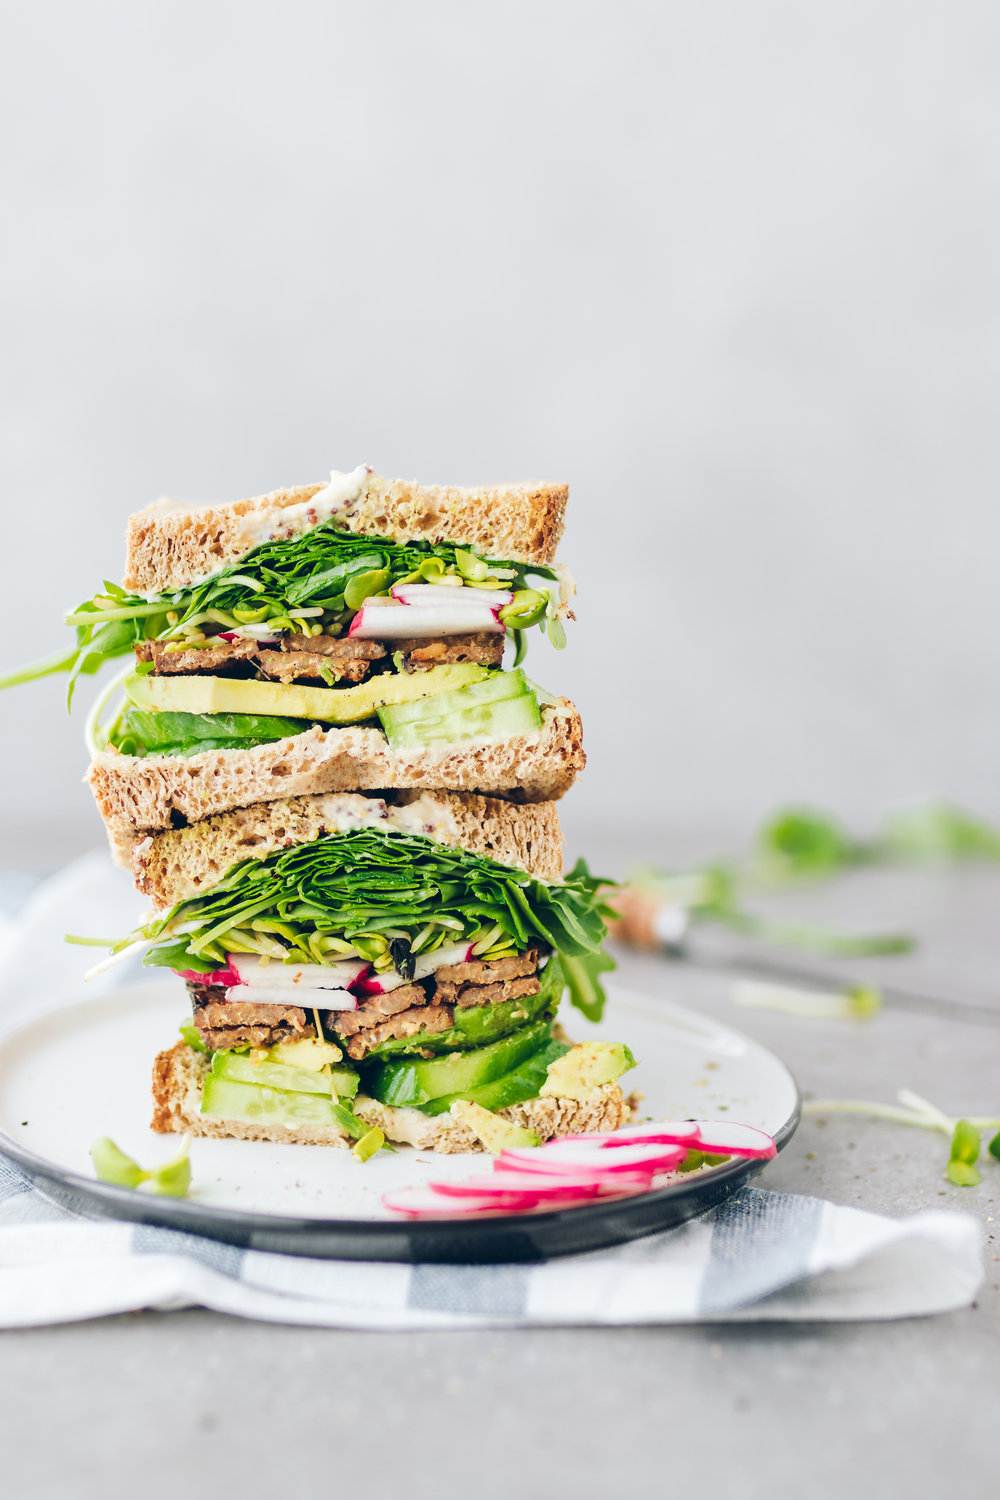 vegan-sandwich-greens-tempeh-bacon-sprouts-spring-simple-mills-radishes-fontaine-sante-hummus-stack